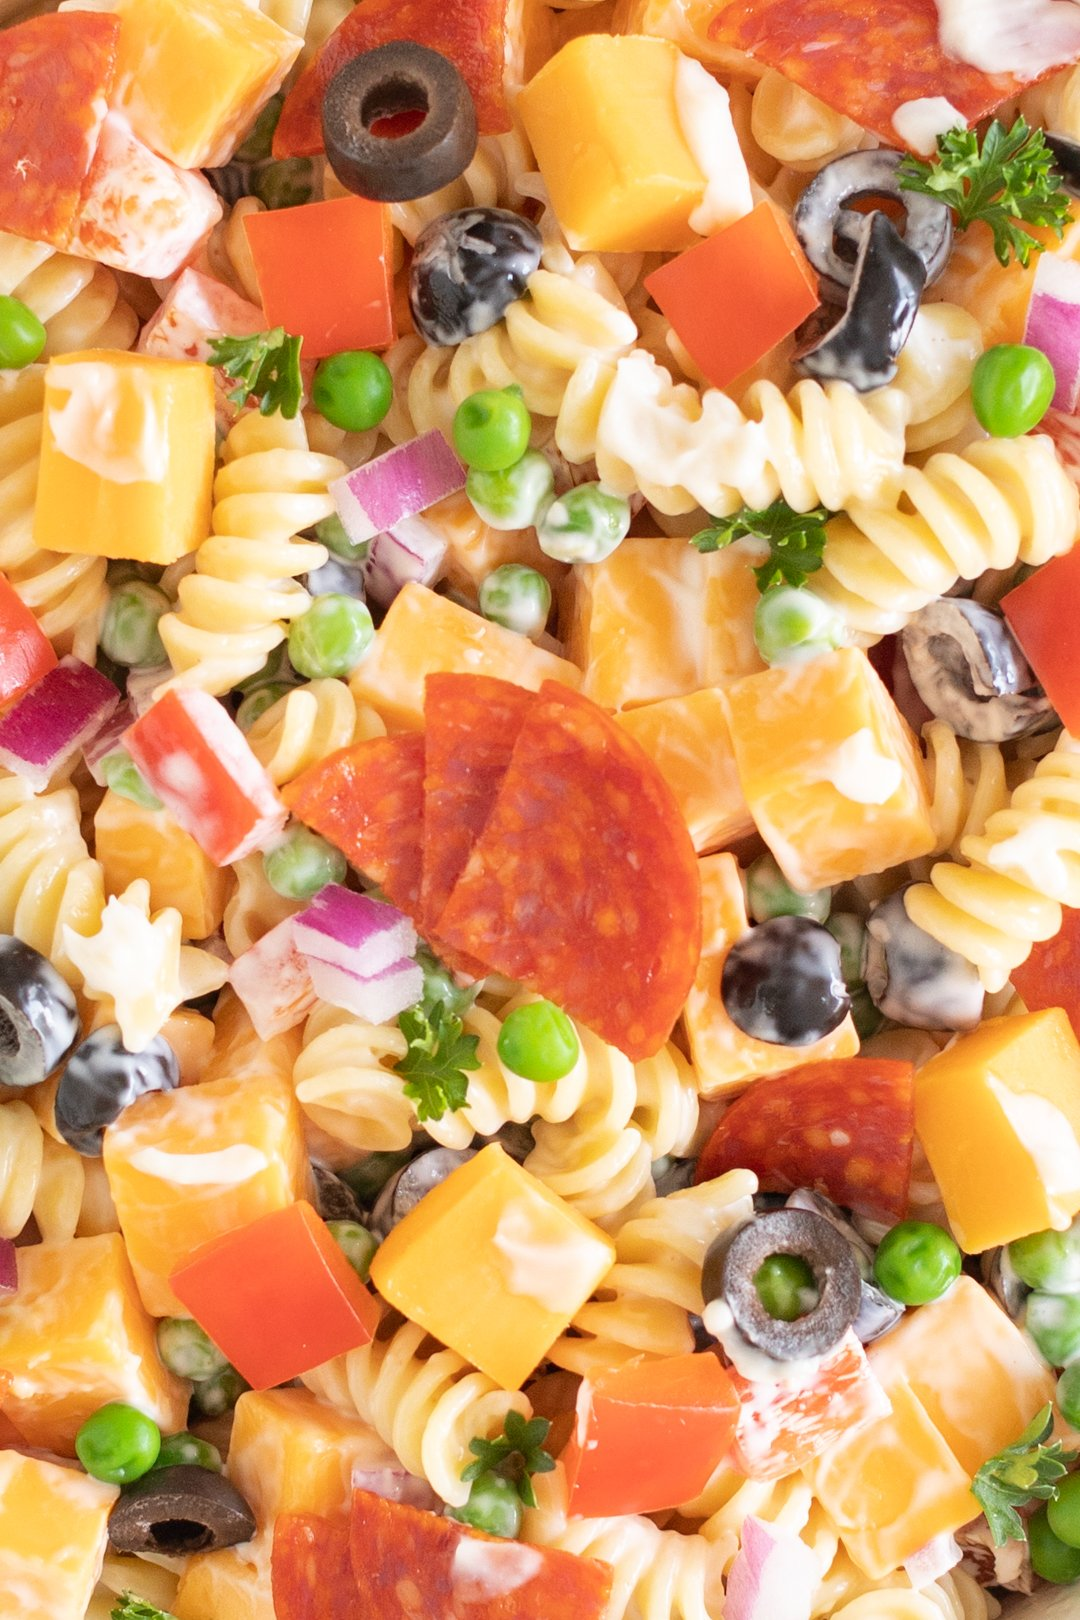 full photo filled with spiral pasta salad with pepperoni quarters, cheese cubes, parsley, black olives, red onions